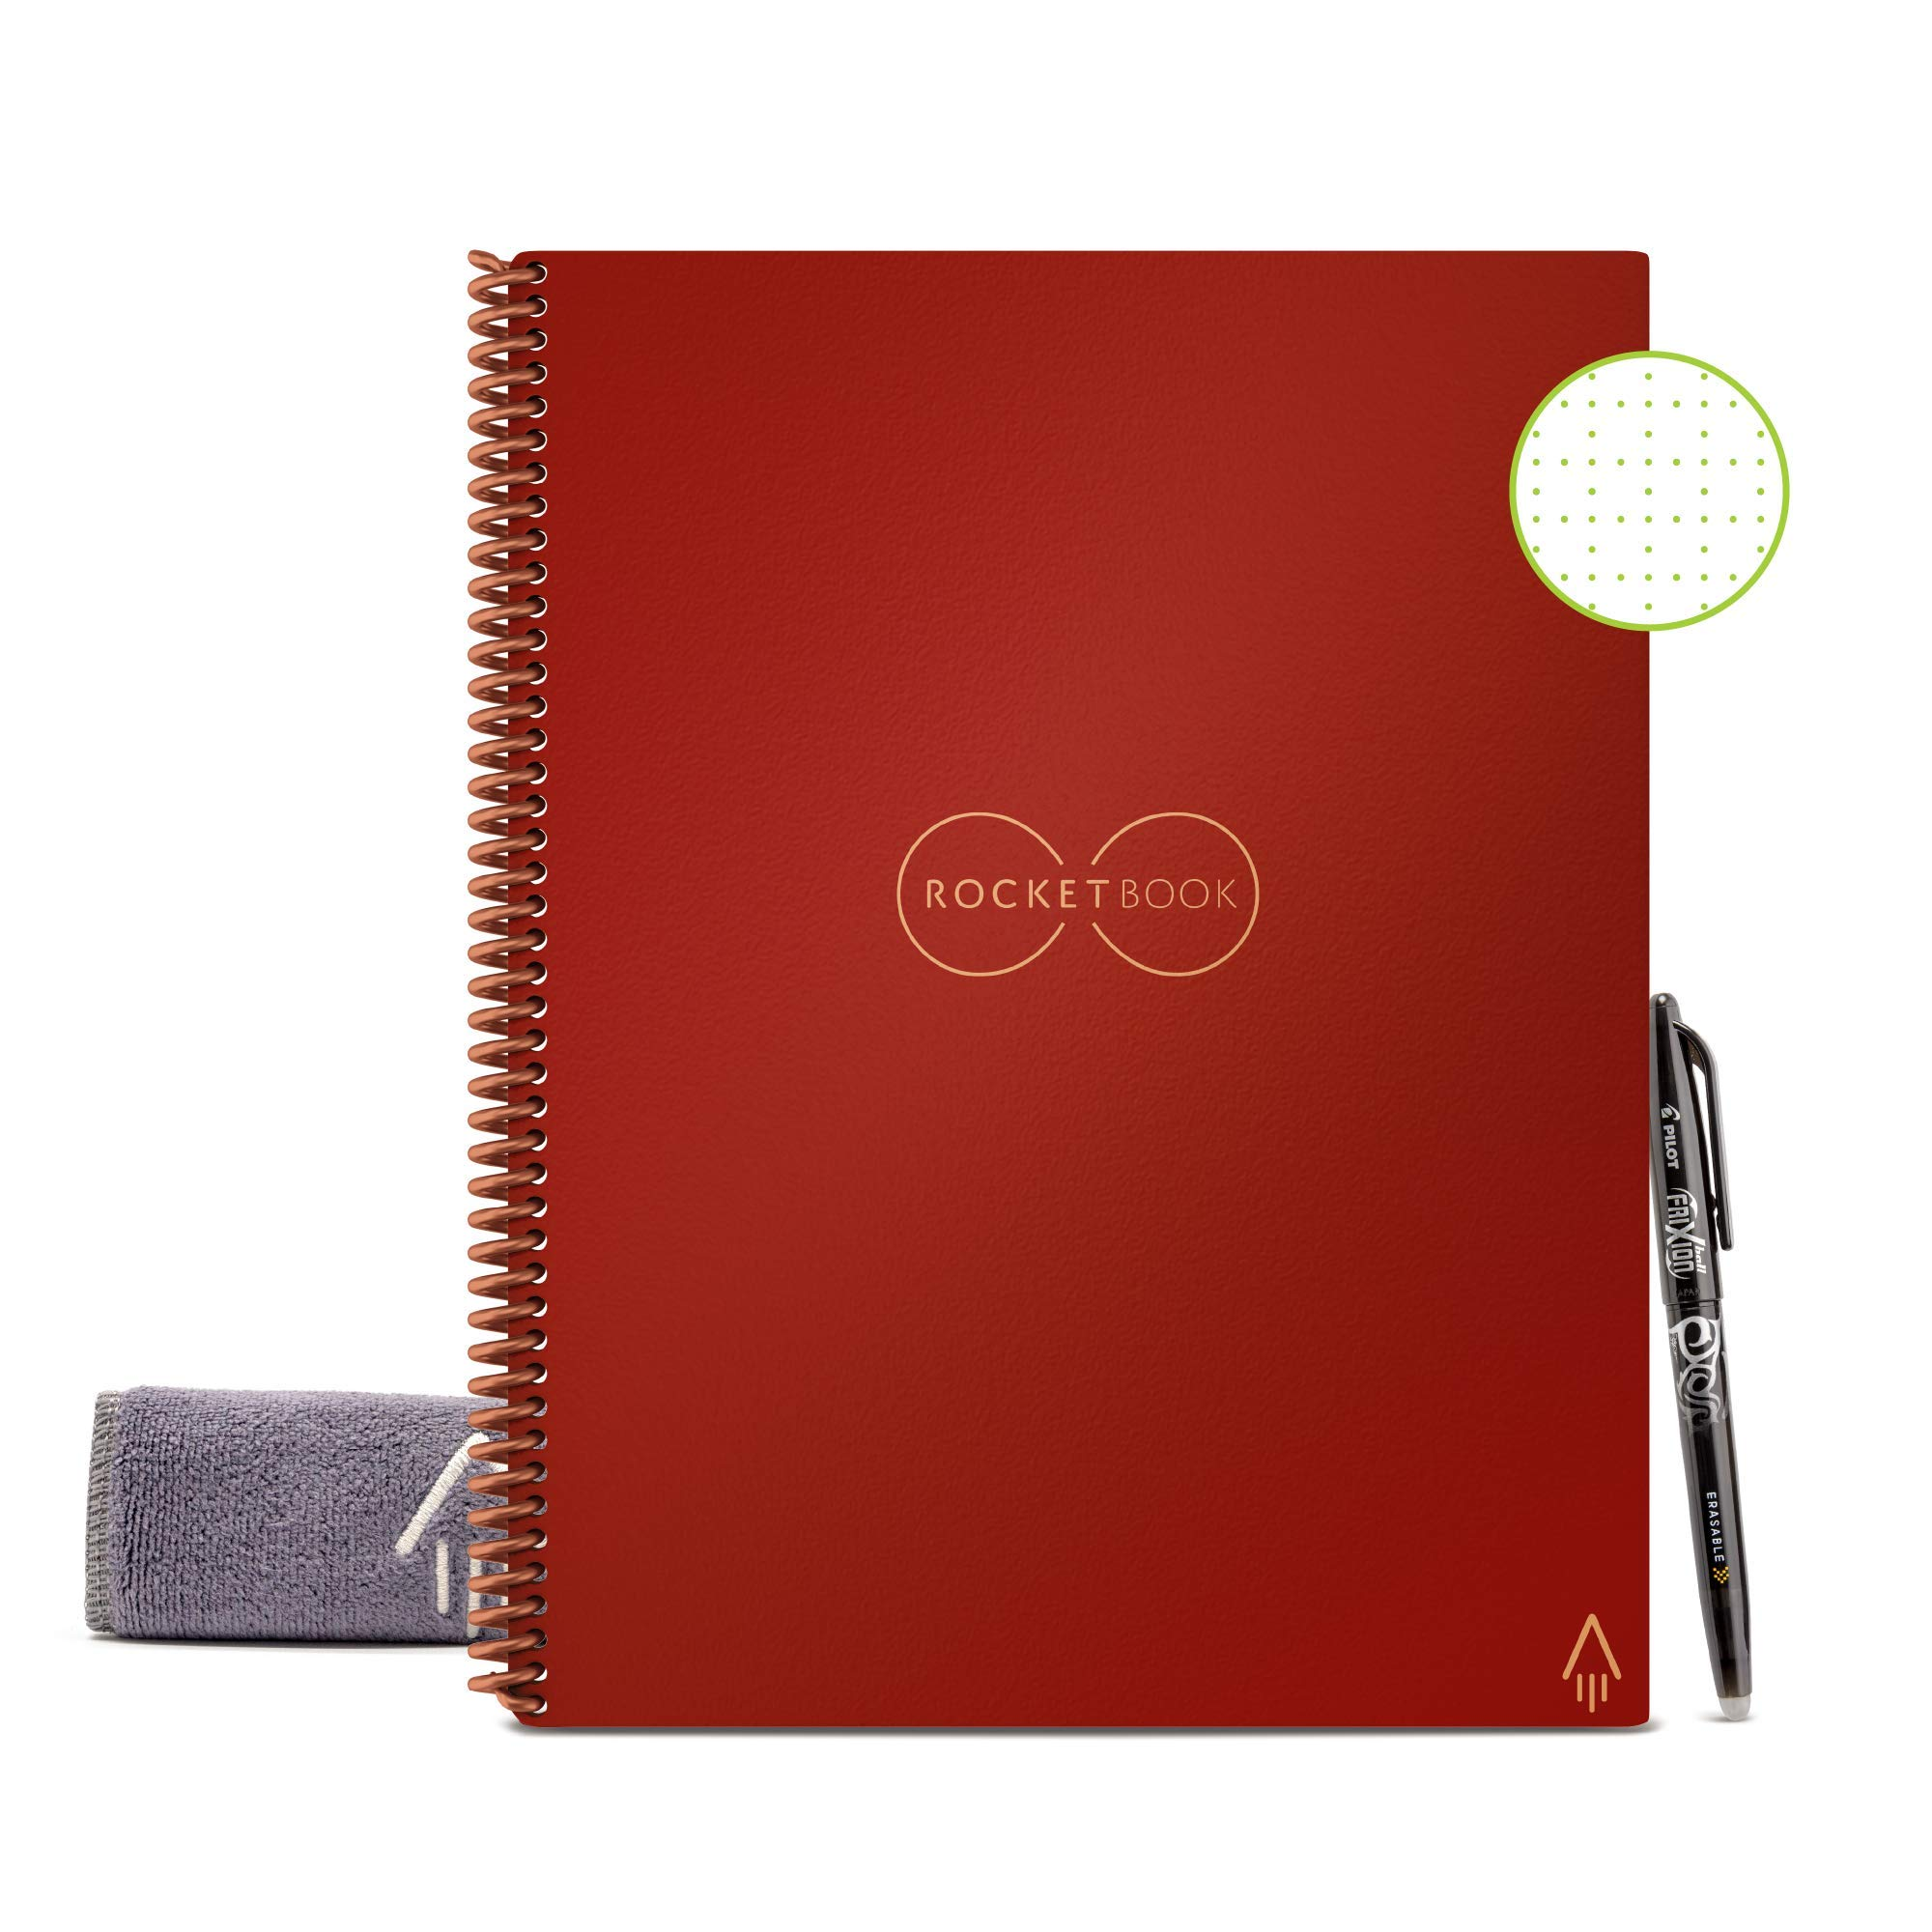 """Rocketbook Smart Reusable Notebook - Dot-Grid Eco-Friendly Notebook with 1 Pilot Frixion Pen & 1 Microfiber Cloth Included - Scarlet color Cover, Letter Size (8.5"""" x 11"""")"""